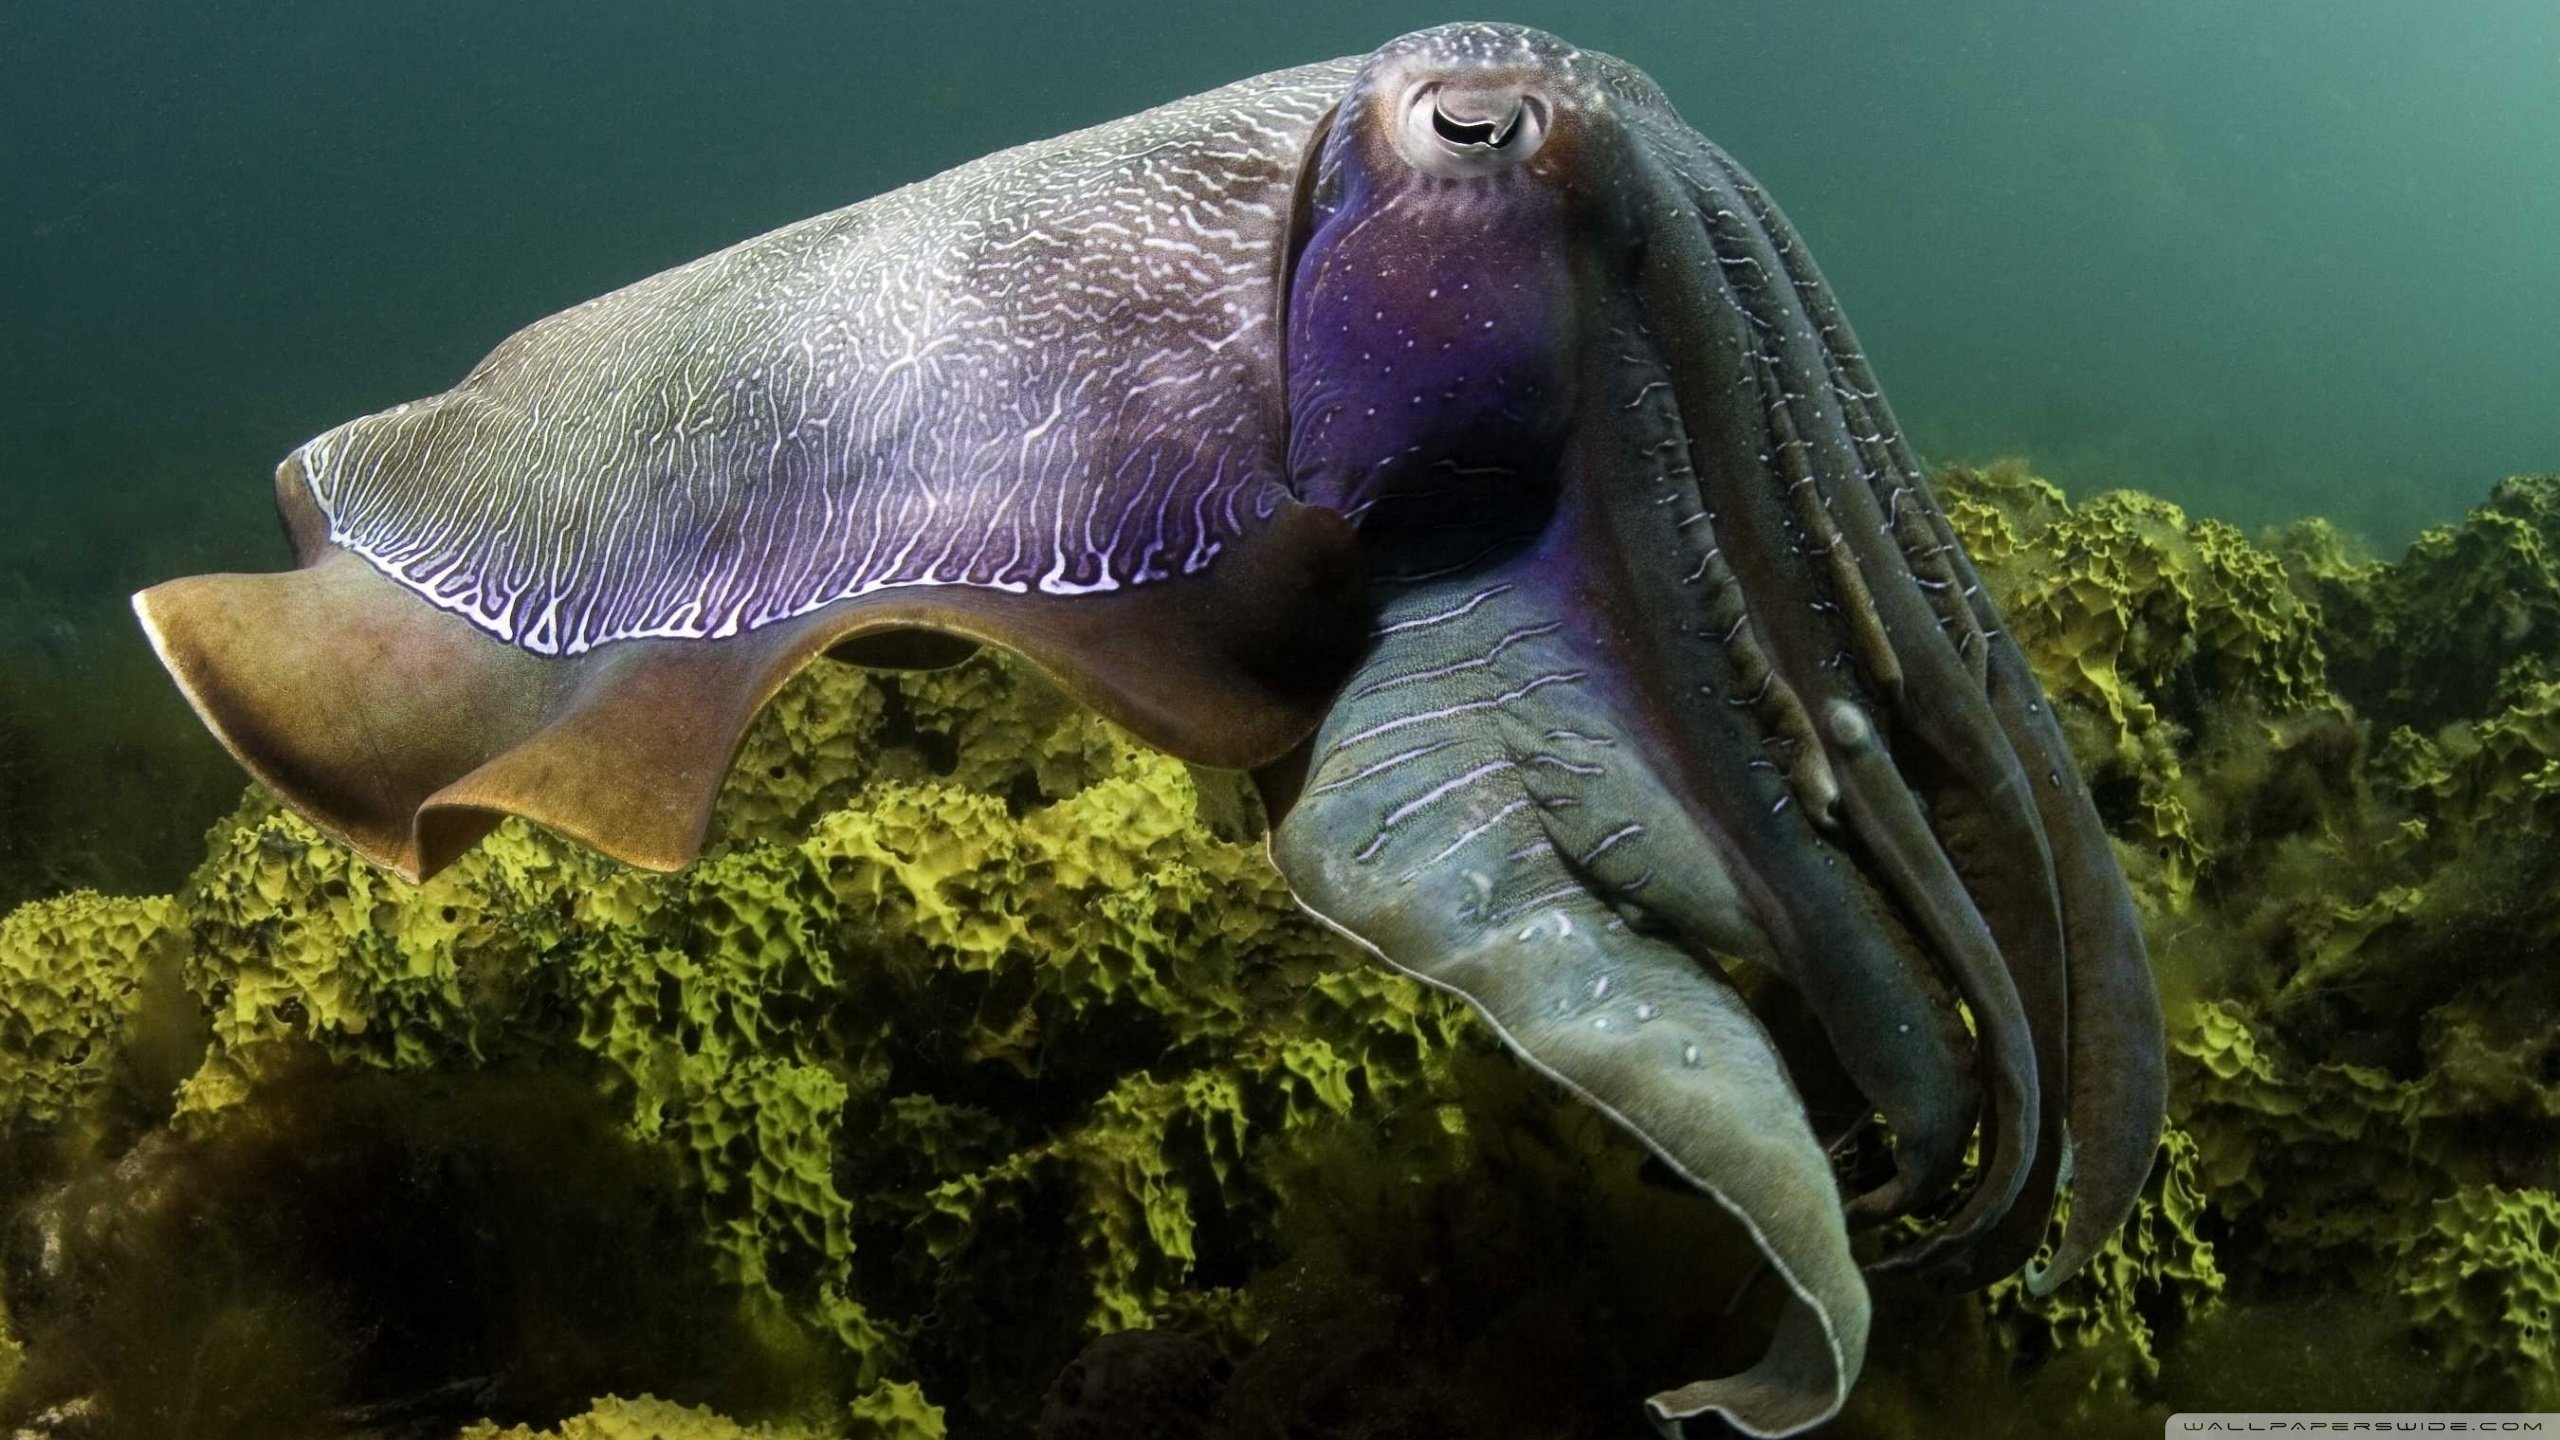 Best Cuttlefish wallpaper ID:239831 for High Resolution hd 2560x1440 computer